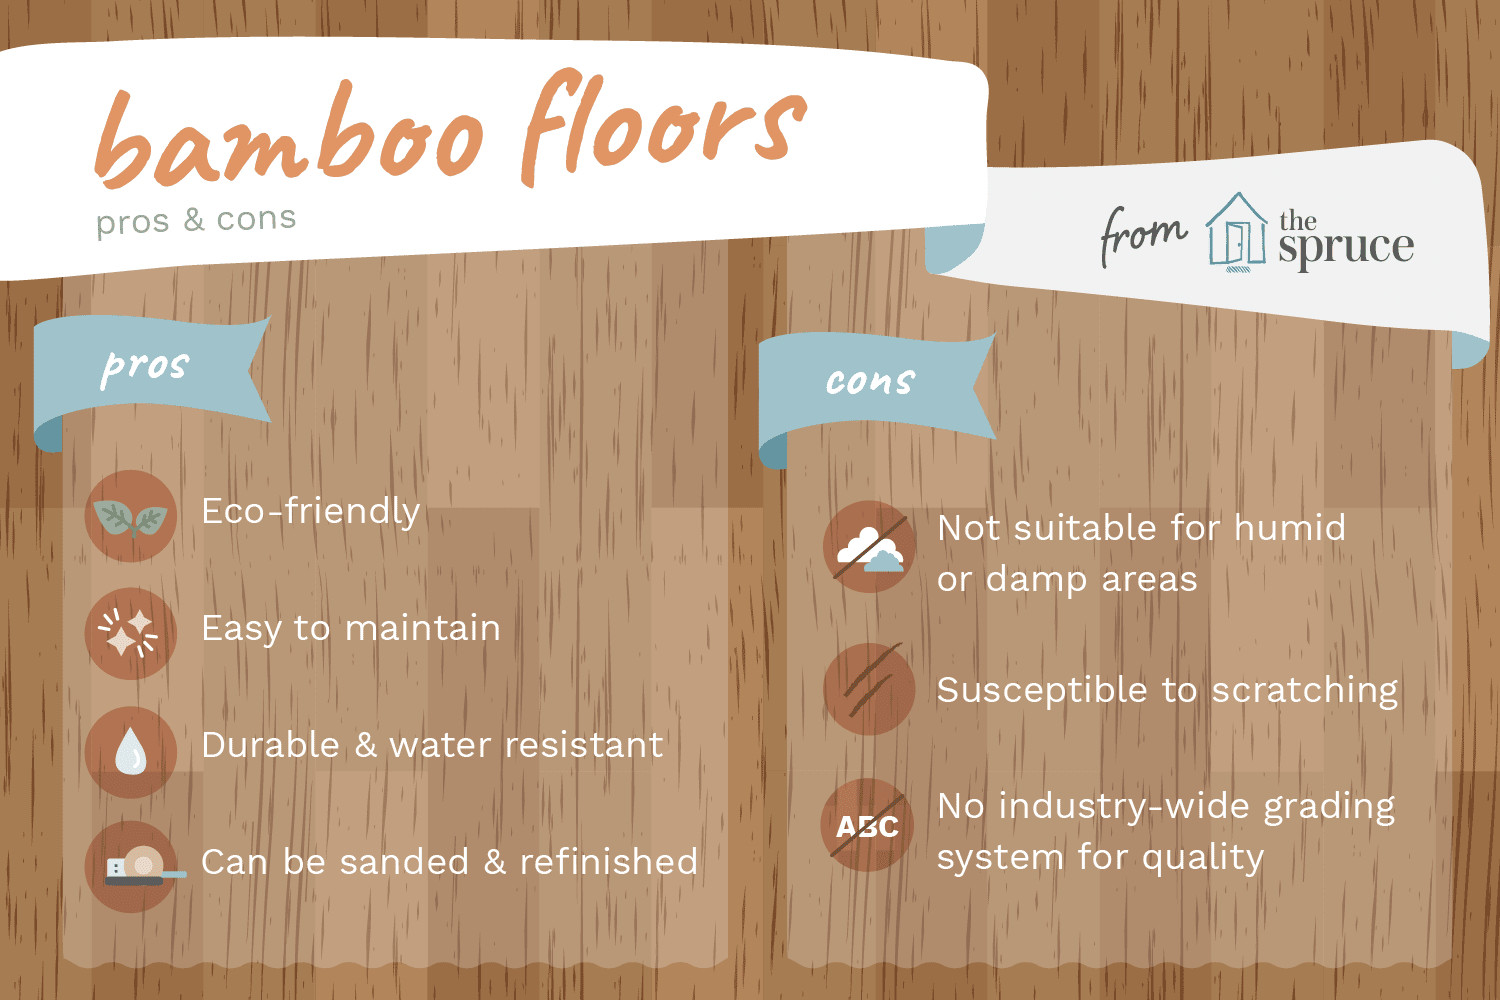 sanding painted hardwood floors of the advantages and disadvantages of bamboo flooring pertaining to benefits and drawbacks of bamboo floors 1314694 v3 5b102fccff1b780036c0a4fa